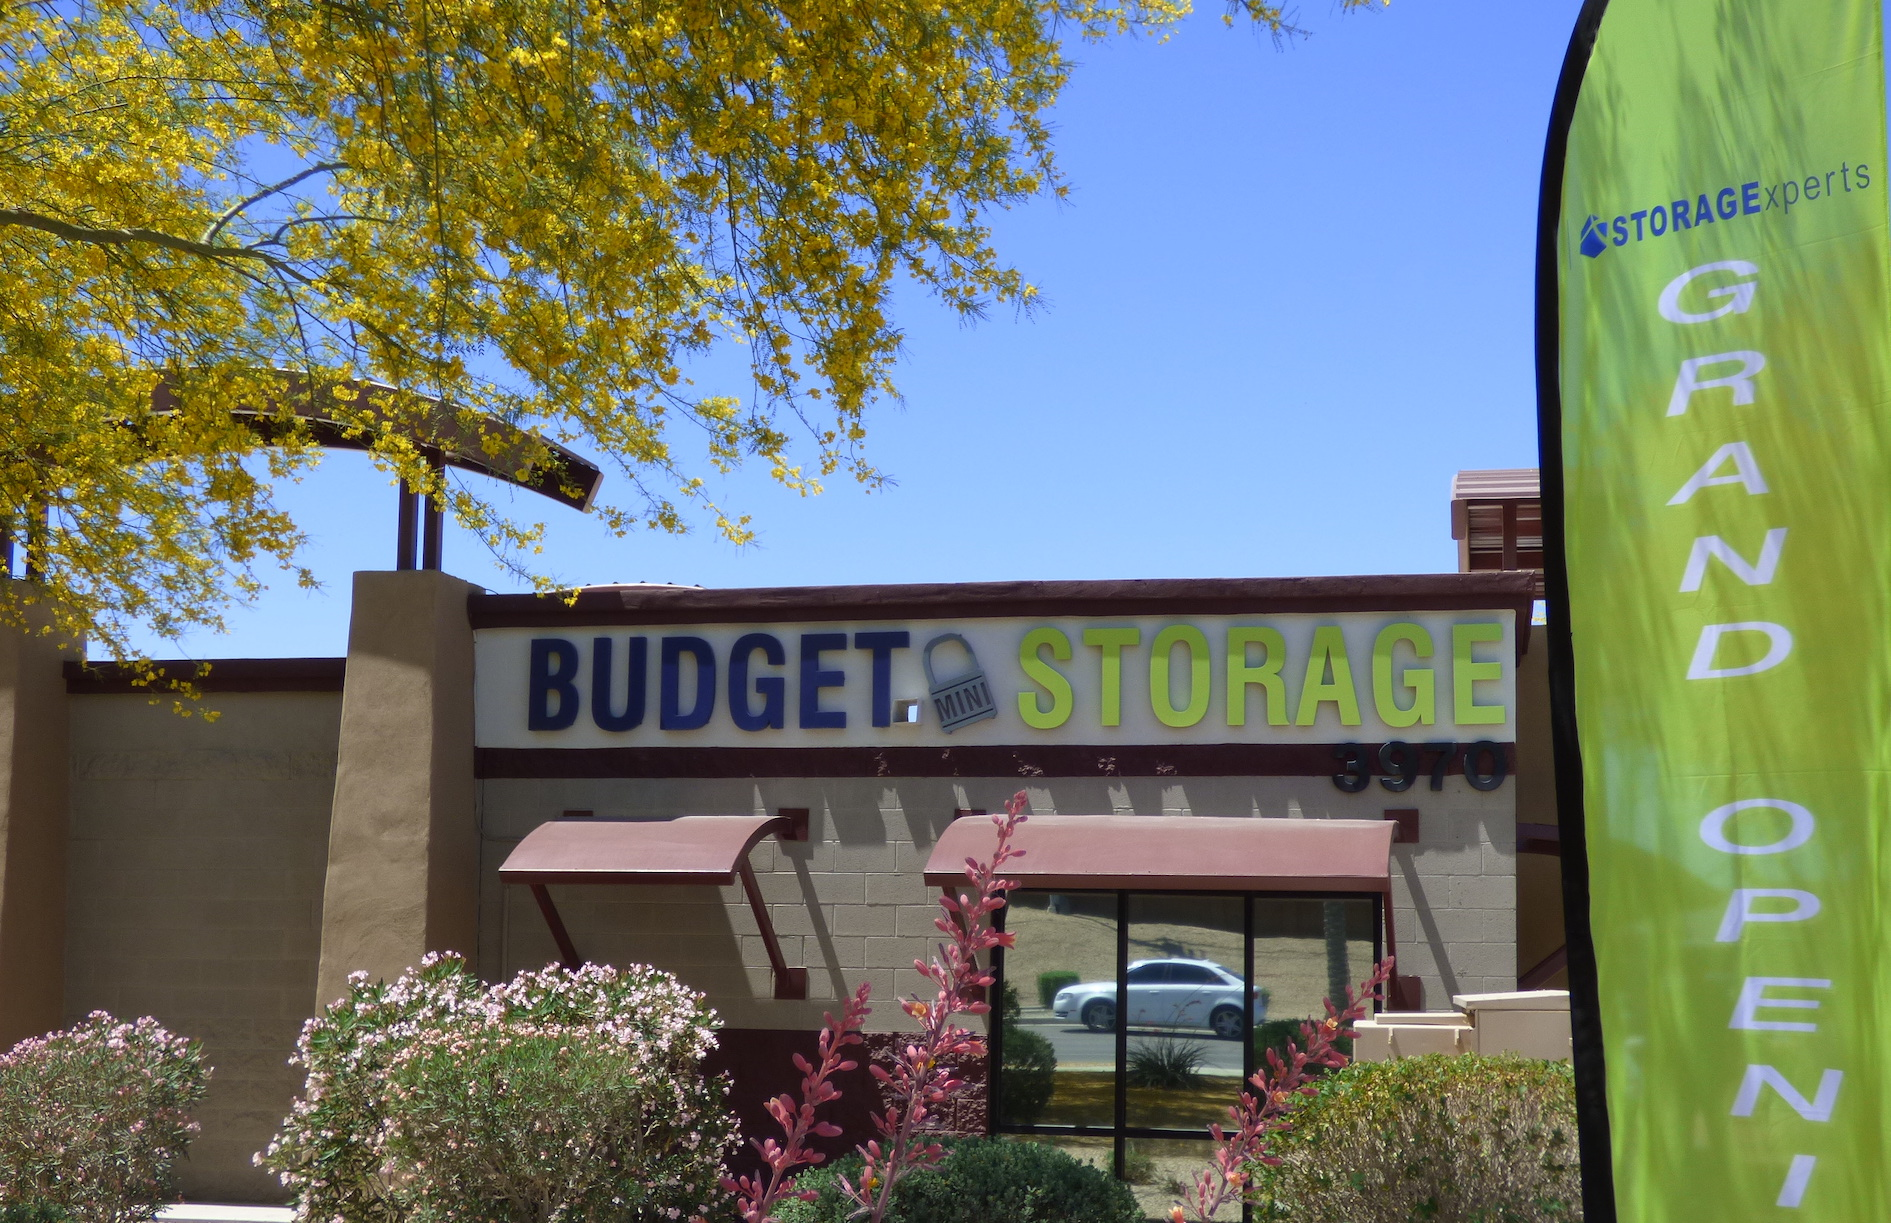 Budget Mini Storage of Goodyear, AZ